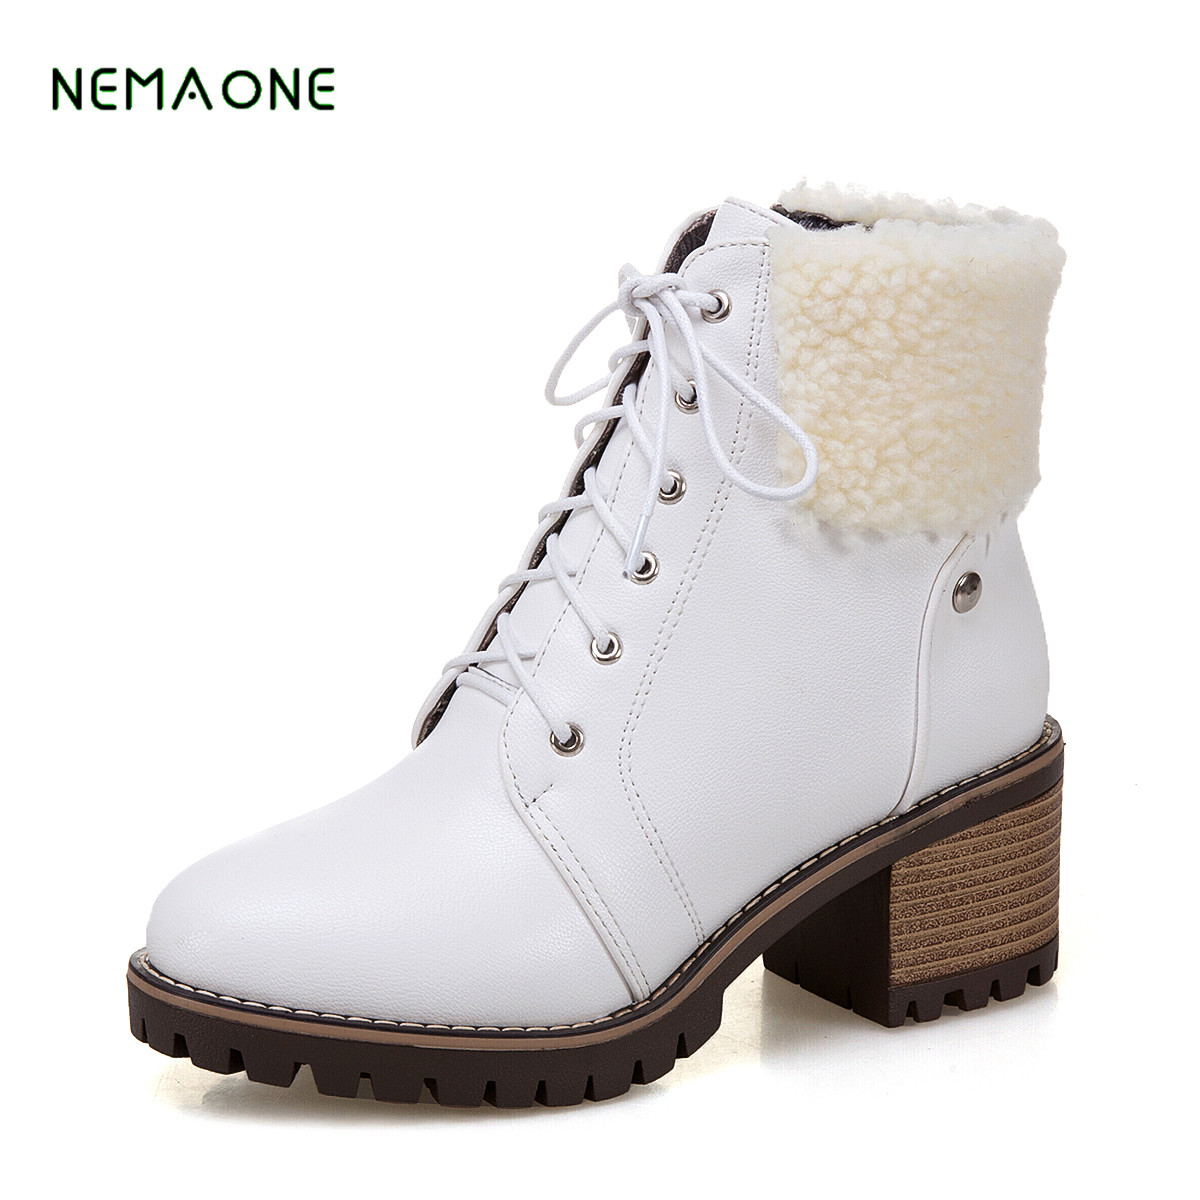 NEMAONE Women Ankle boots Shoes Strap Med Heels Boots Ladies Zip Female casual Boots Rivet Autumn Spring 2018 New 2017 spring new women sweet floral embroidery pastoralism denim jeans pockets ankle length pants ladies casual trouse top118